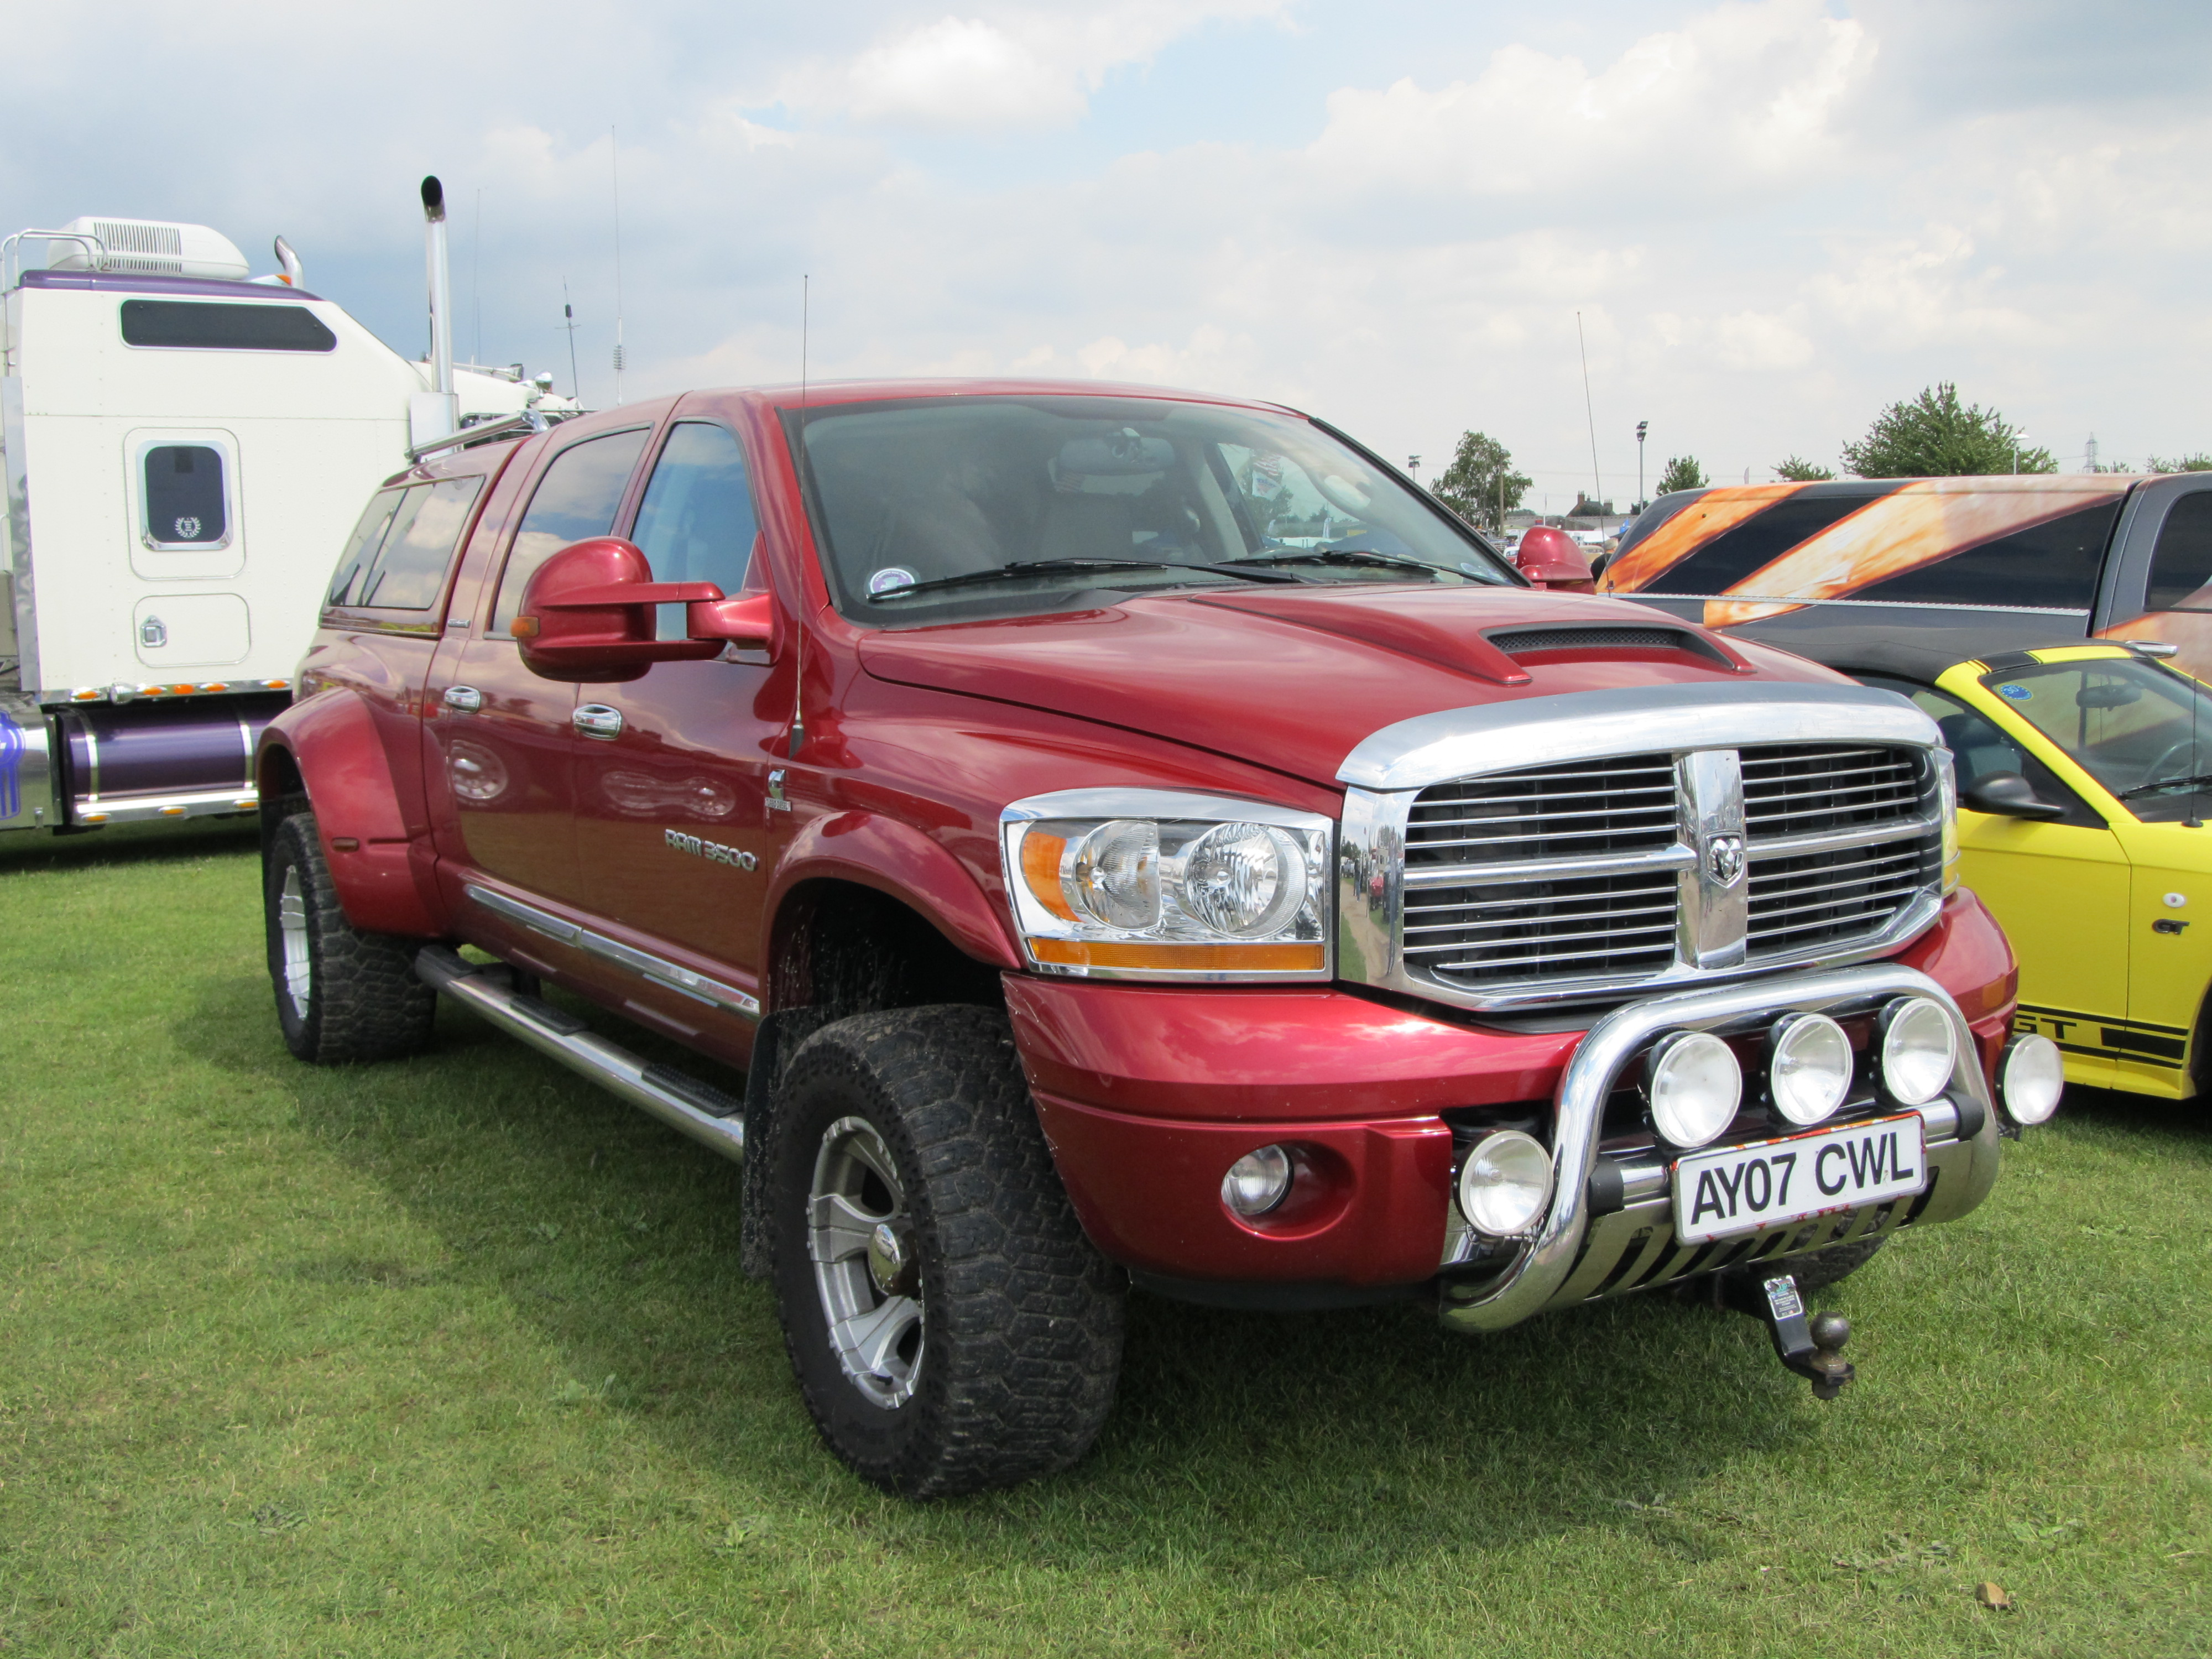 Dodge Ram Pickup, Americana Car Shows in England. | Flickr - Photo ...